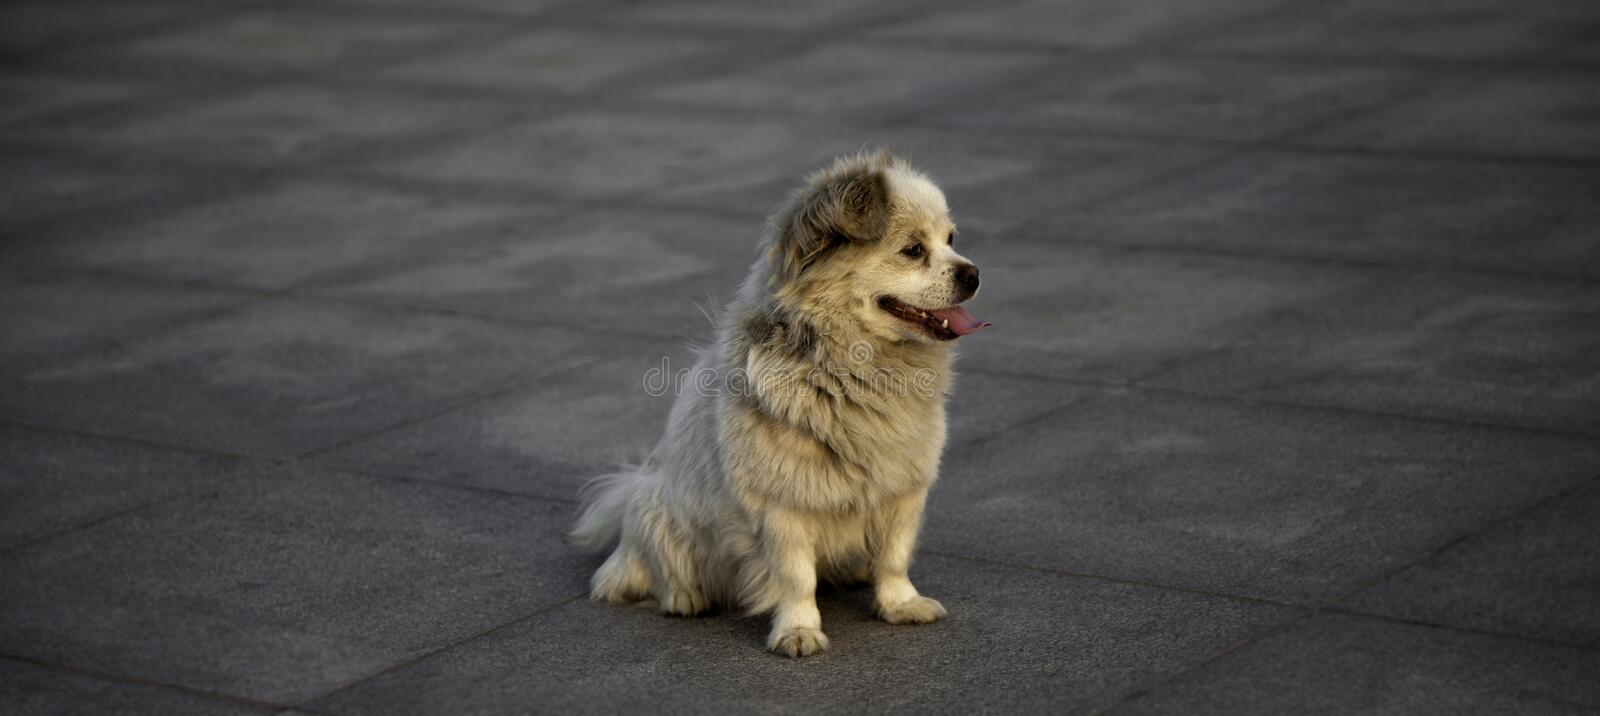 Download A waiting dog stock image. Image of alone, owner, lonely - 31746305